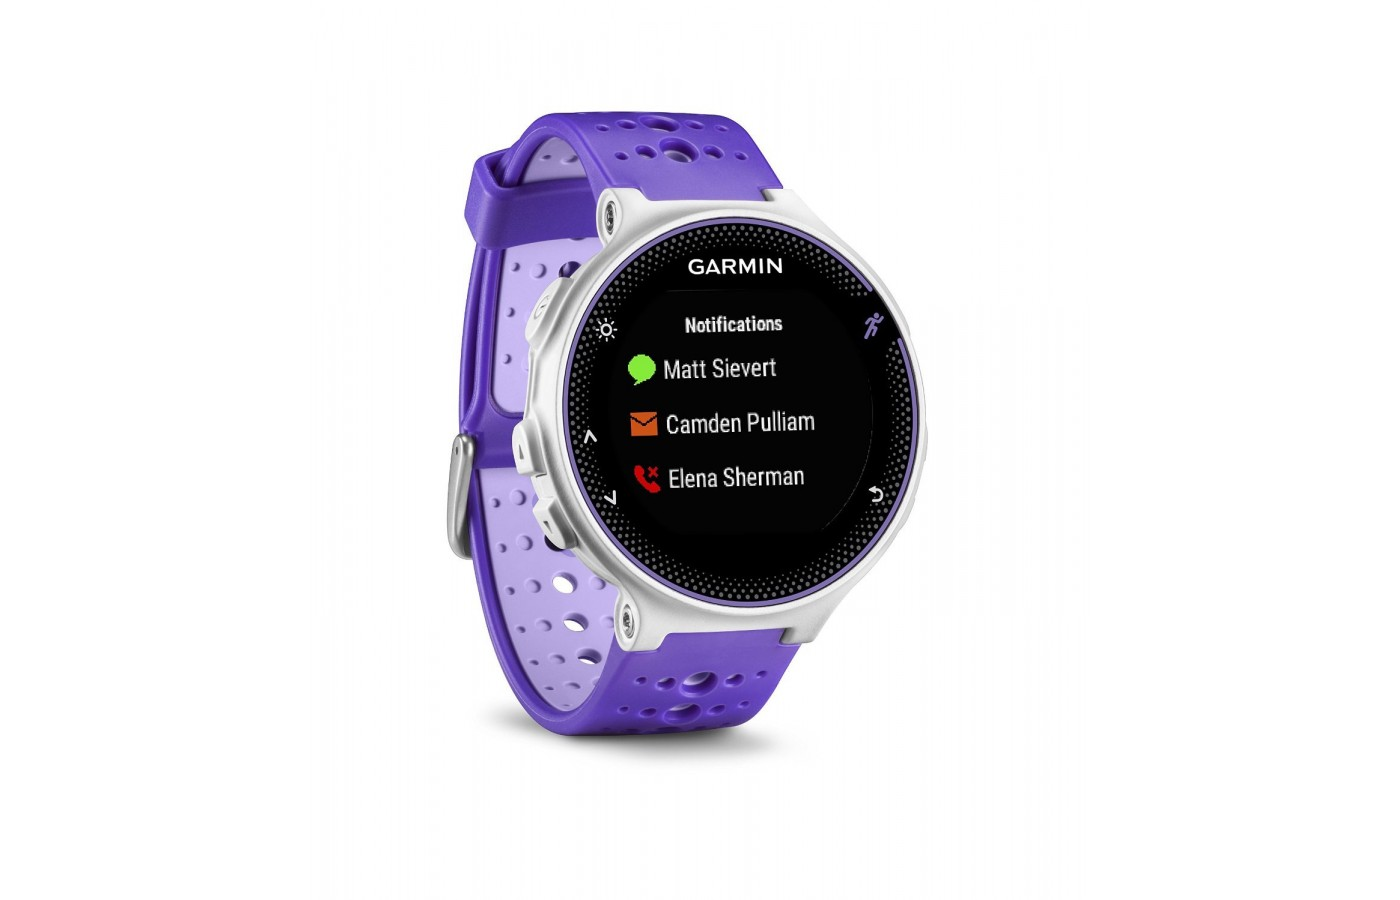 Daily activity tracking and smartwatch notifications are features the watch has.